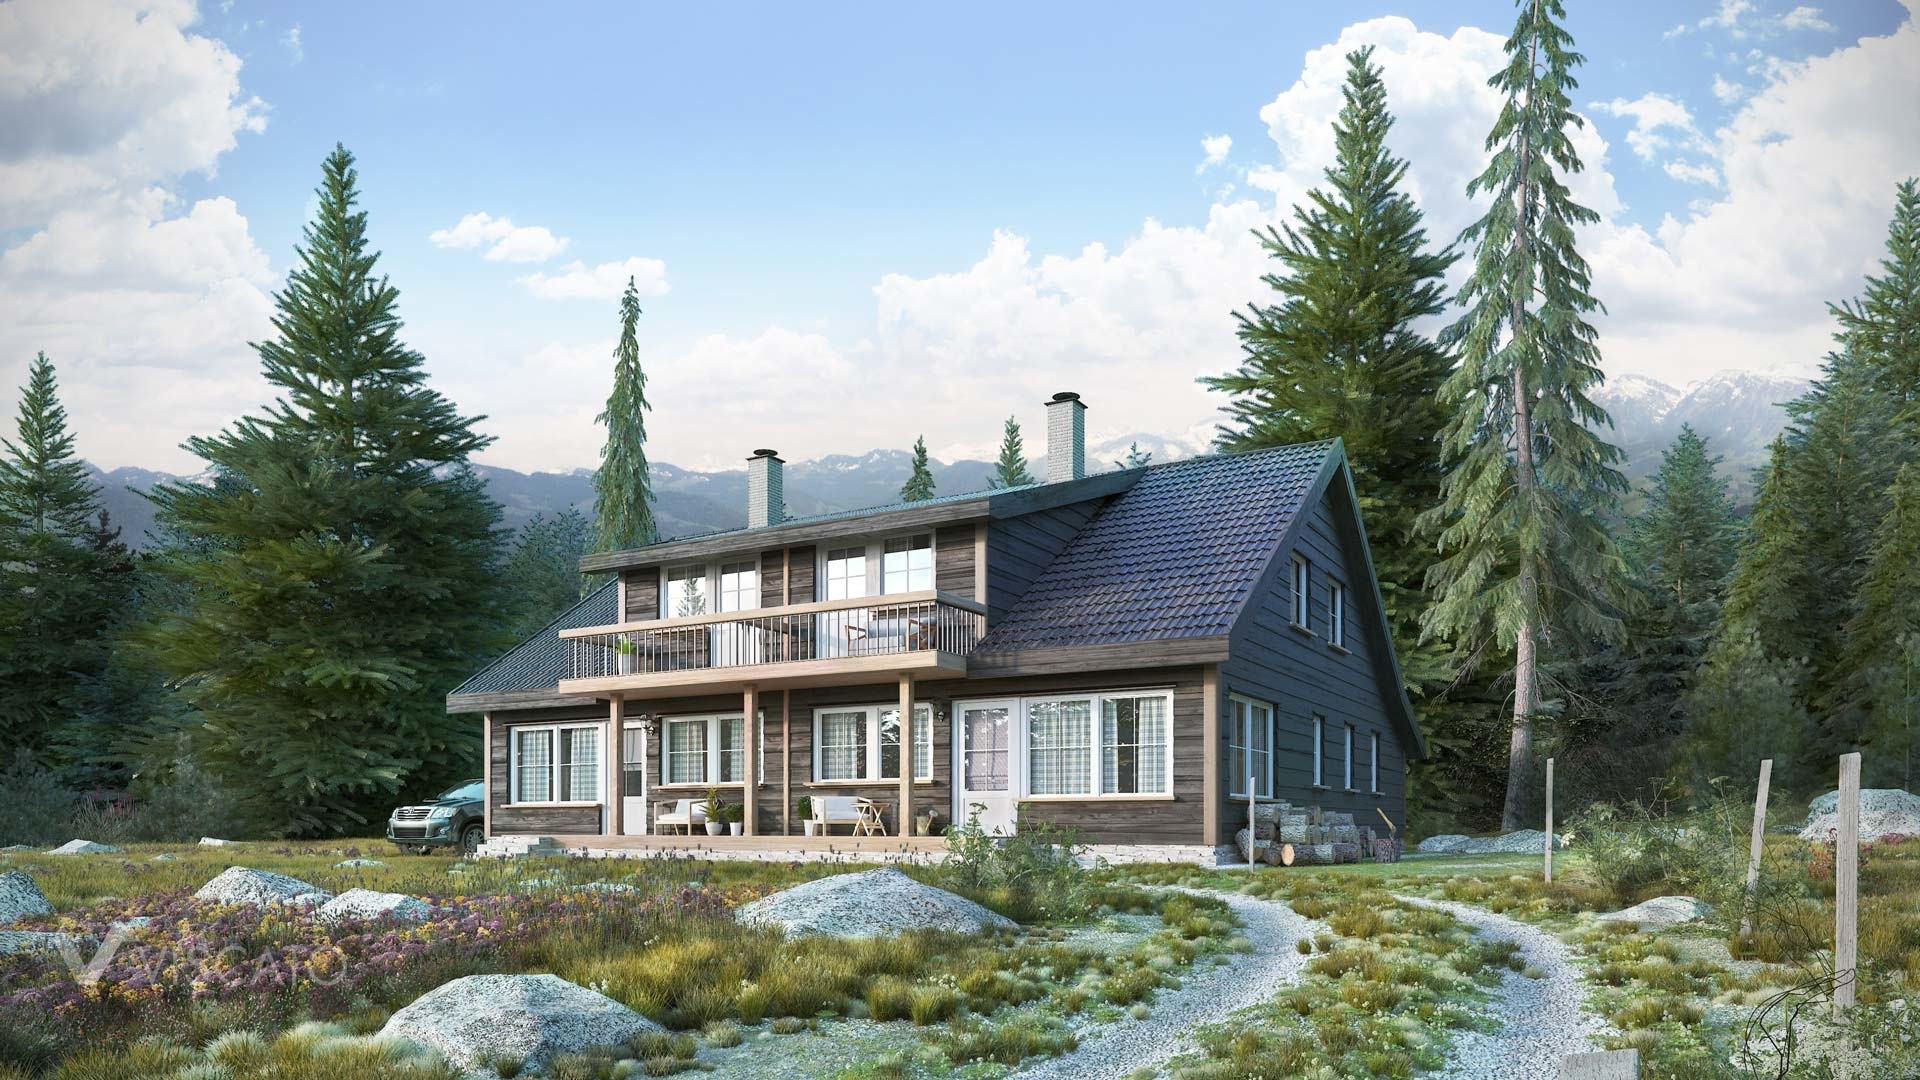 3d vizualization of a cottage in Norwegian forest